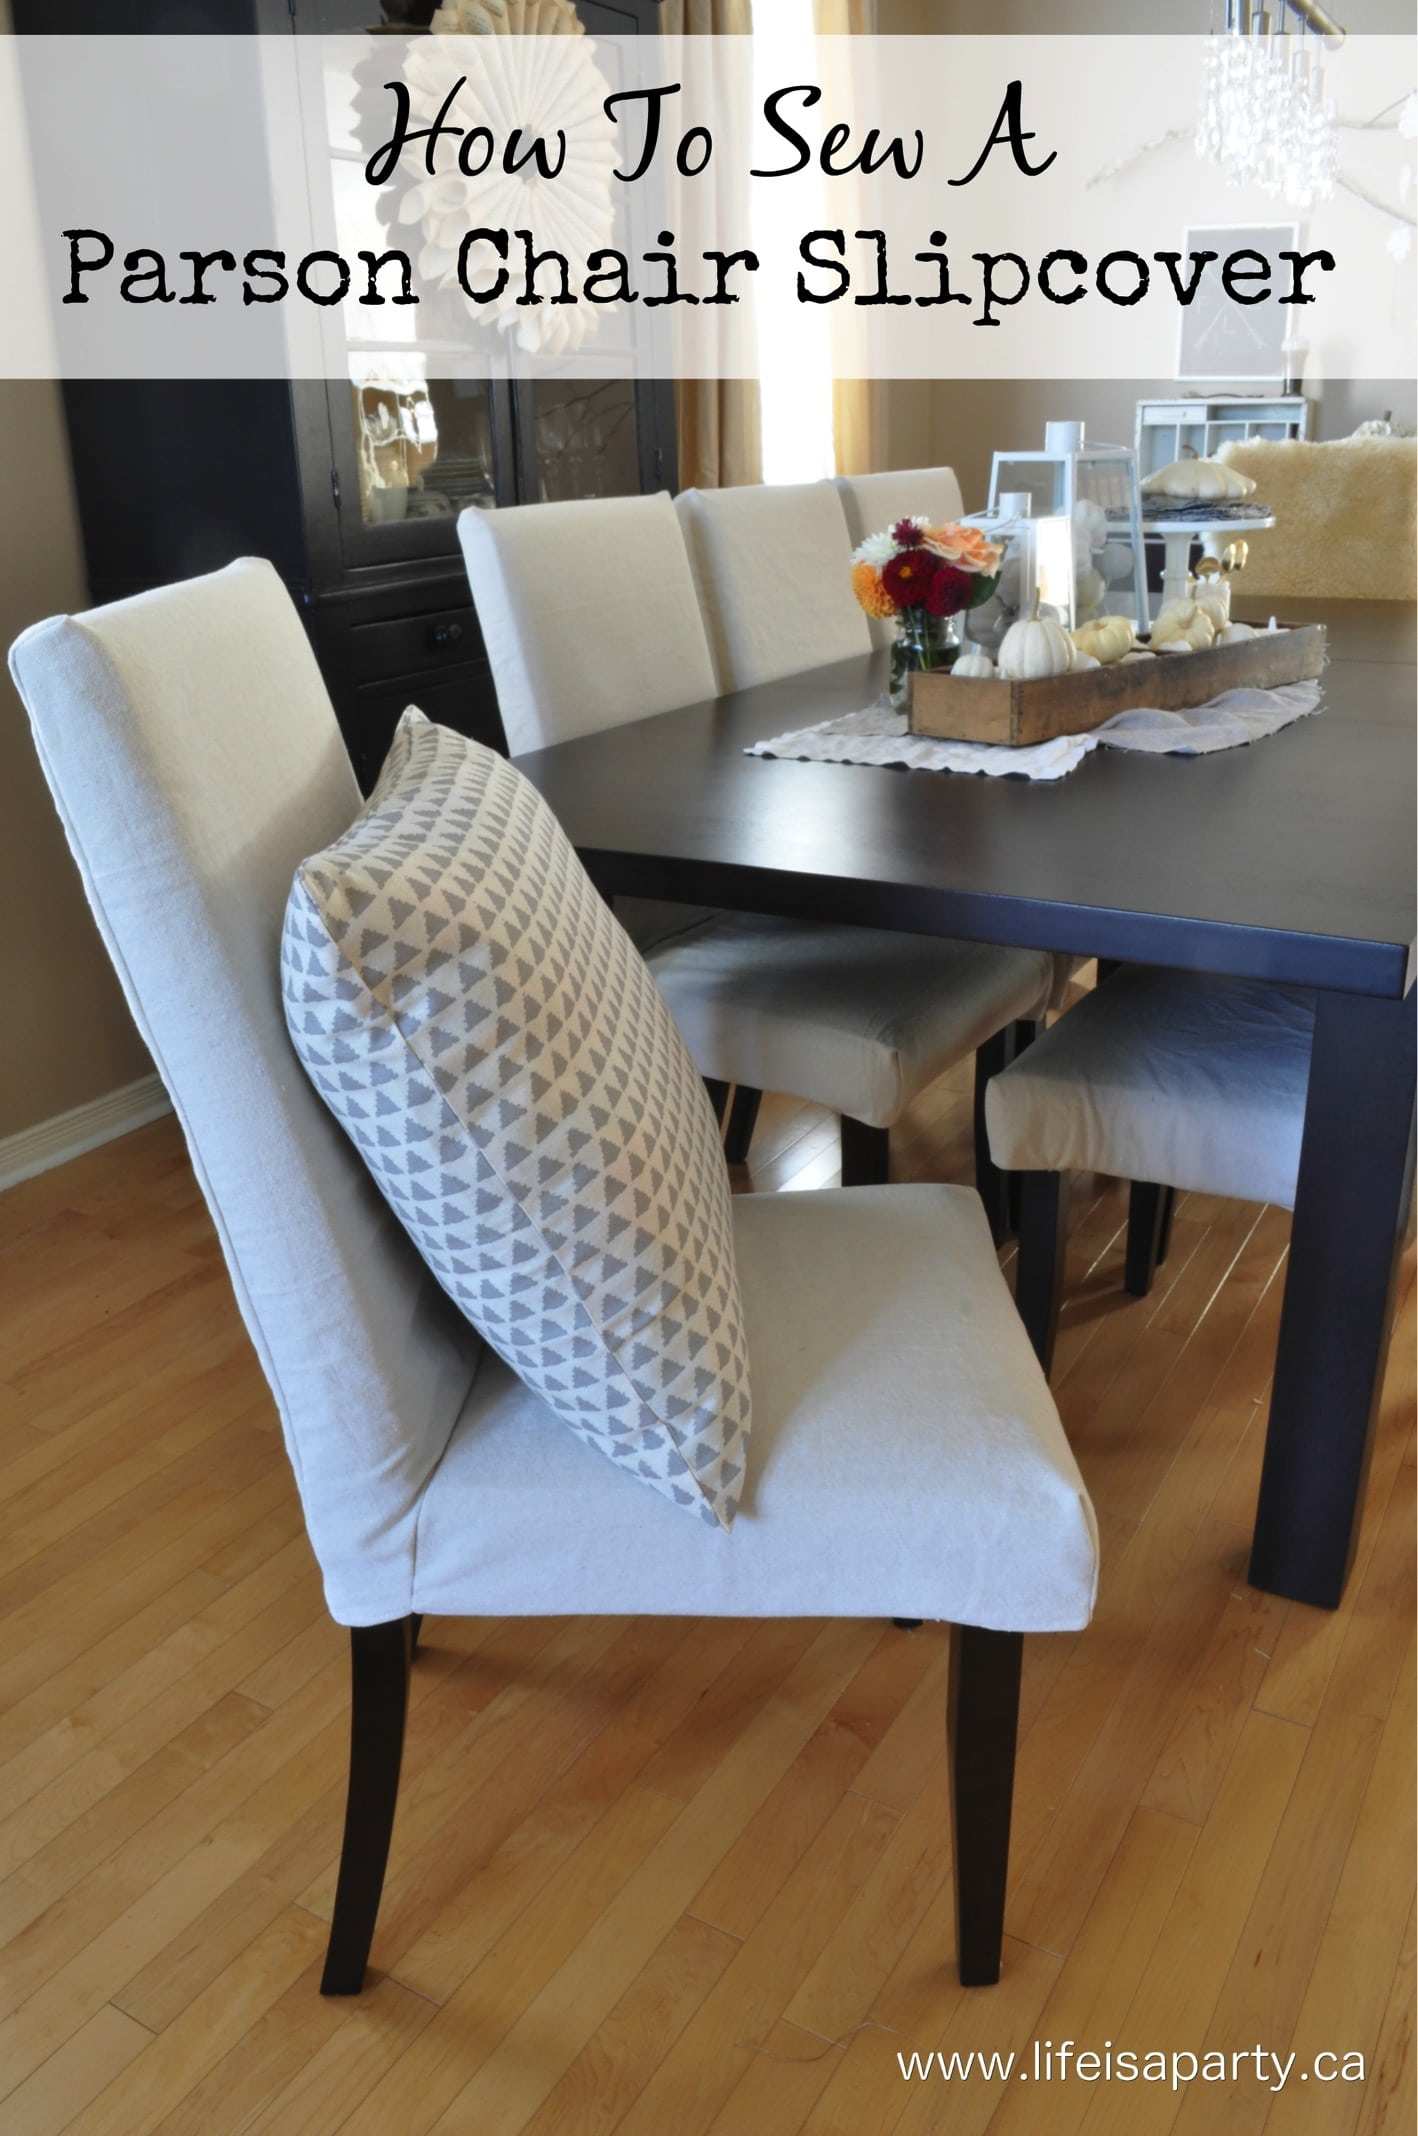 living room slipcovers organization parson chair life is a party how to sew inexpensive makeover with drop cloth you can